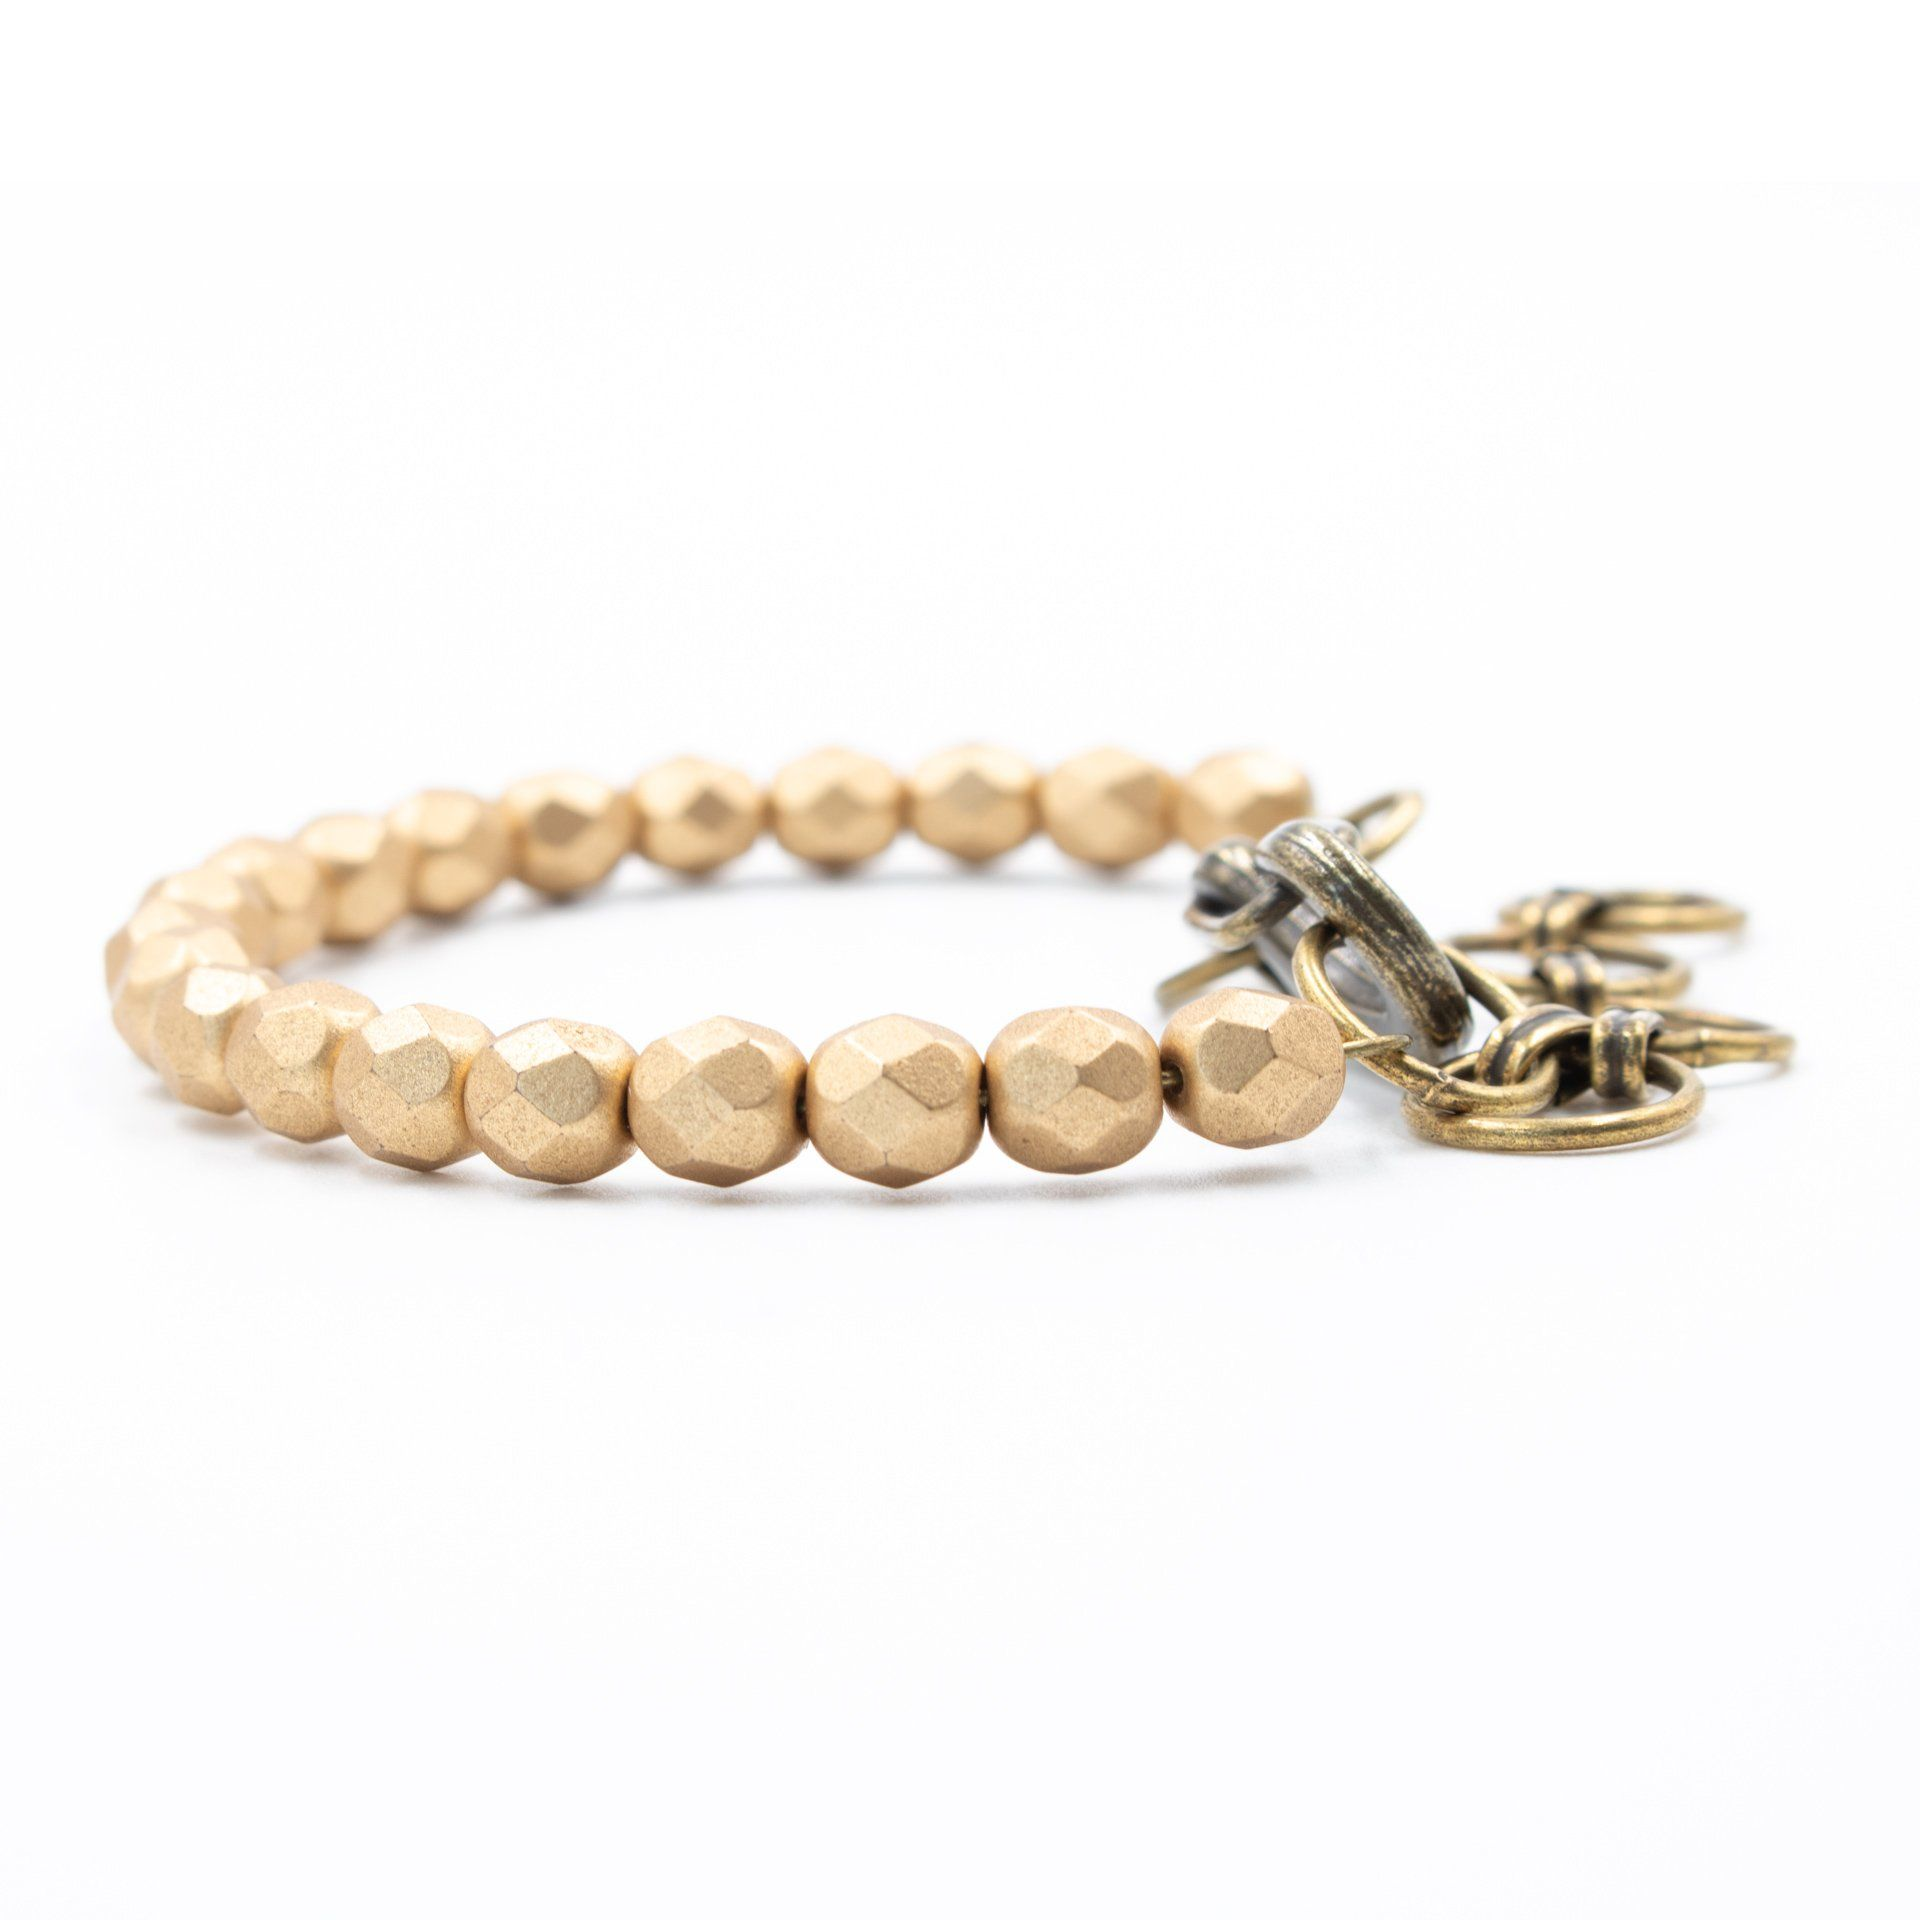 The Mini Bangle Bracelet in Matte Metallic Gold